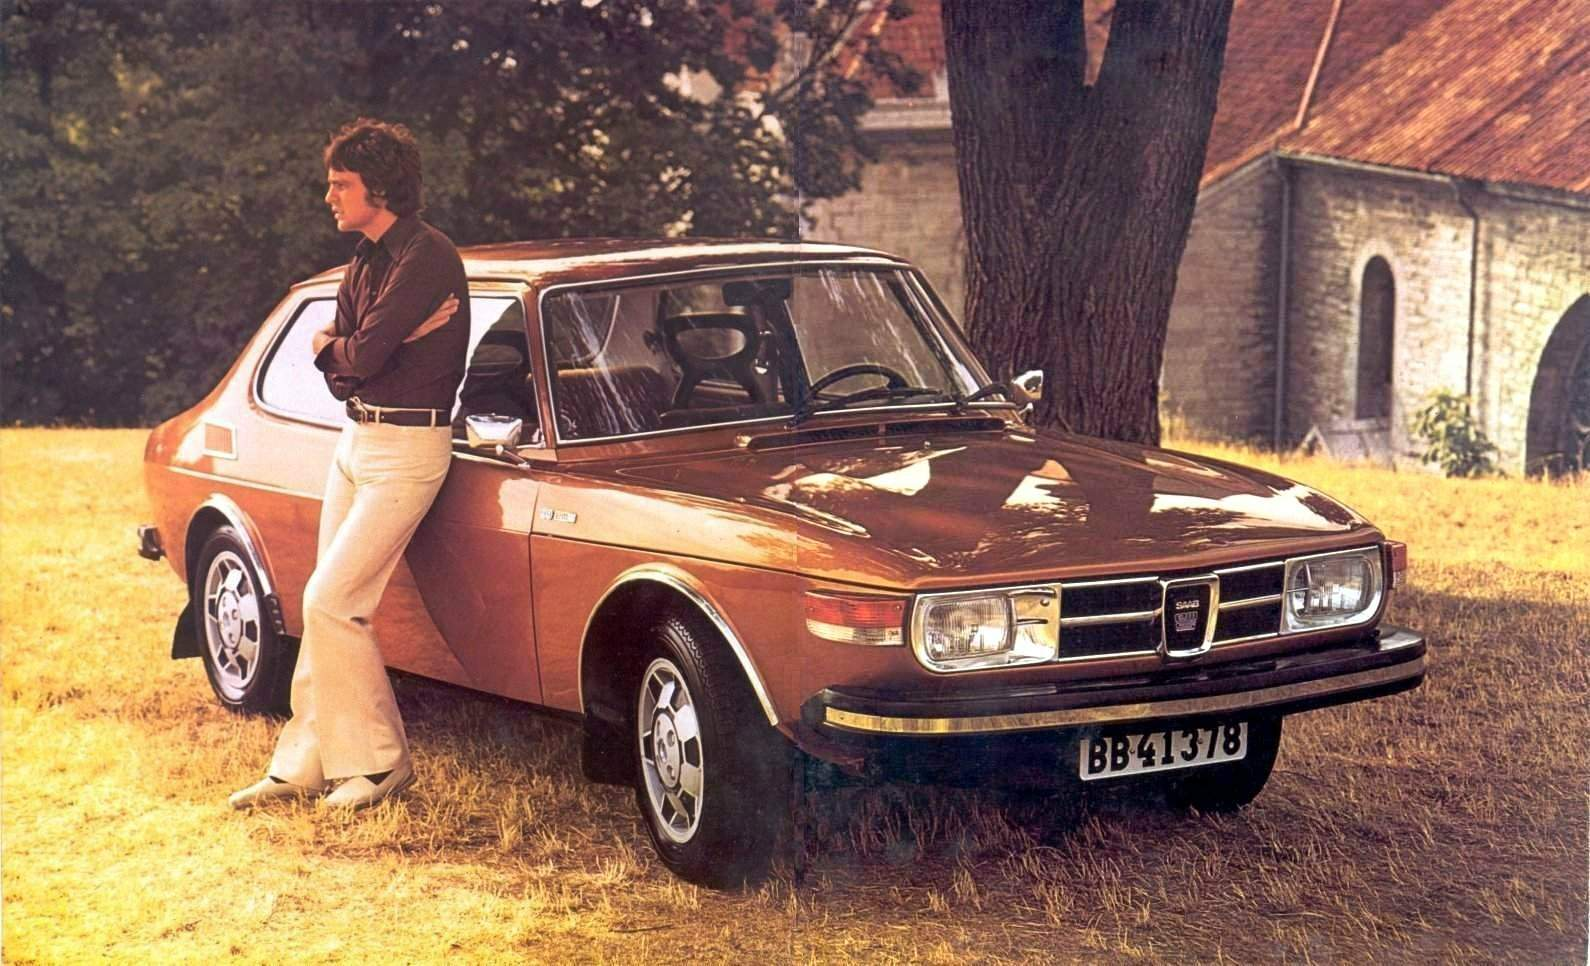 saab 99 pictures #8